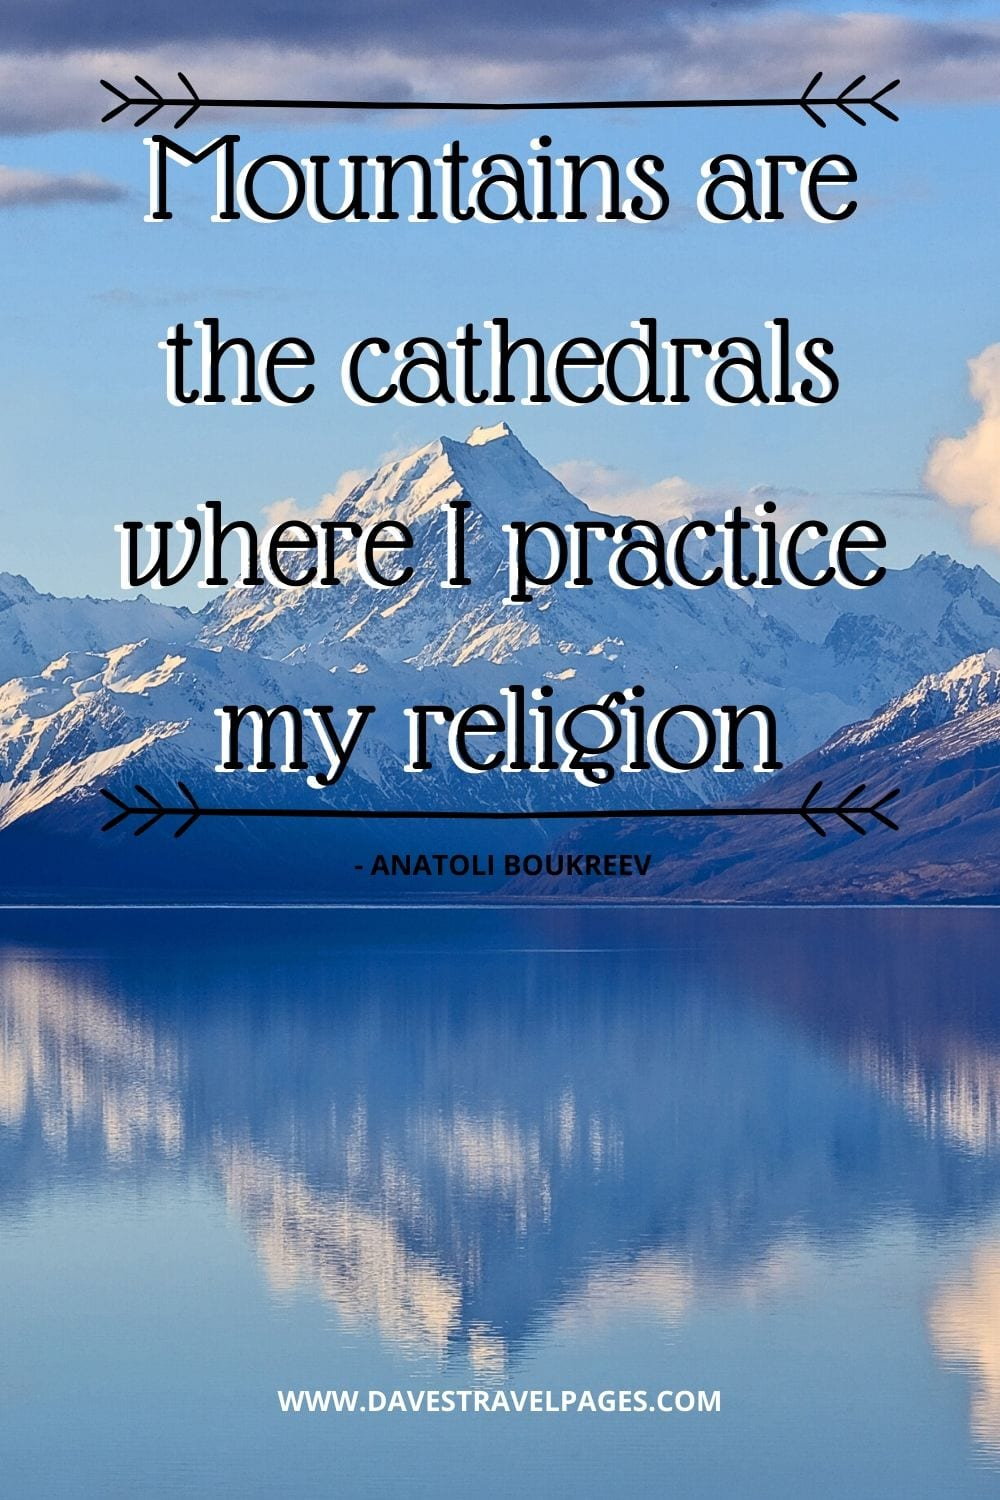 Mountains are the cathedrals where I practice my religion. - Anatoli Boukreev